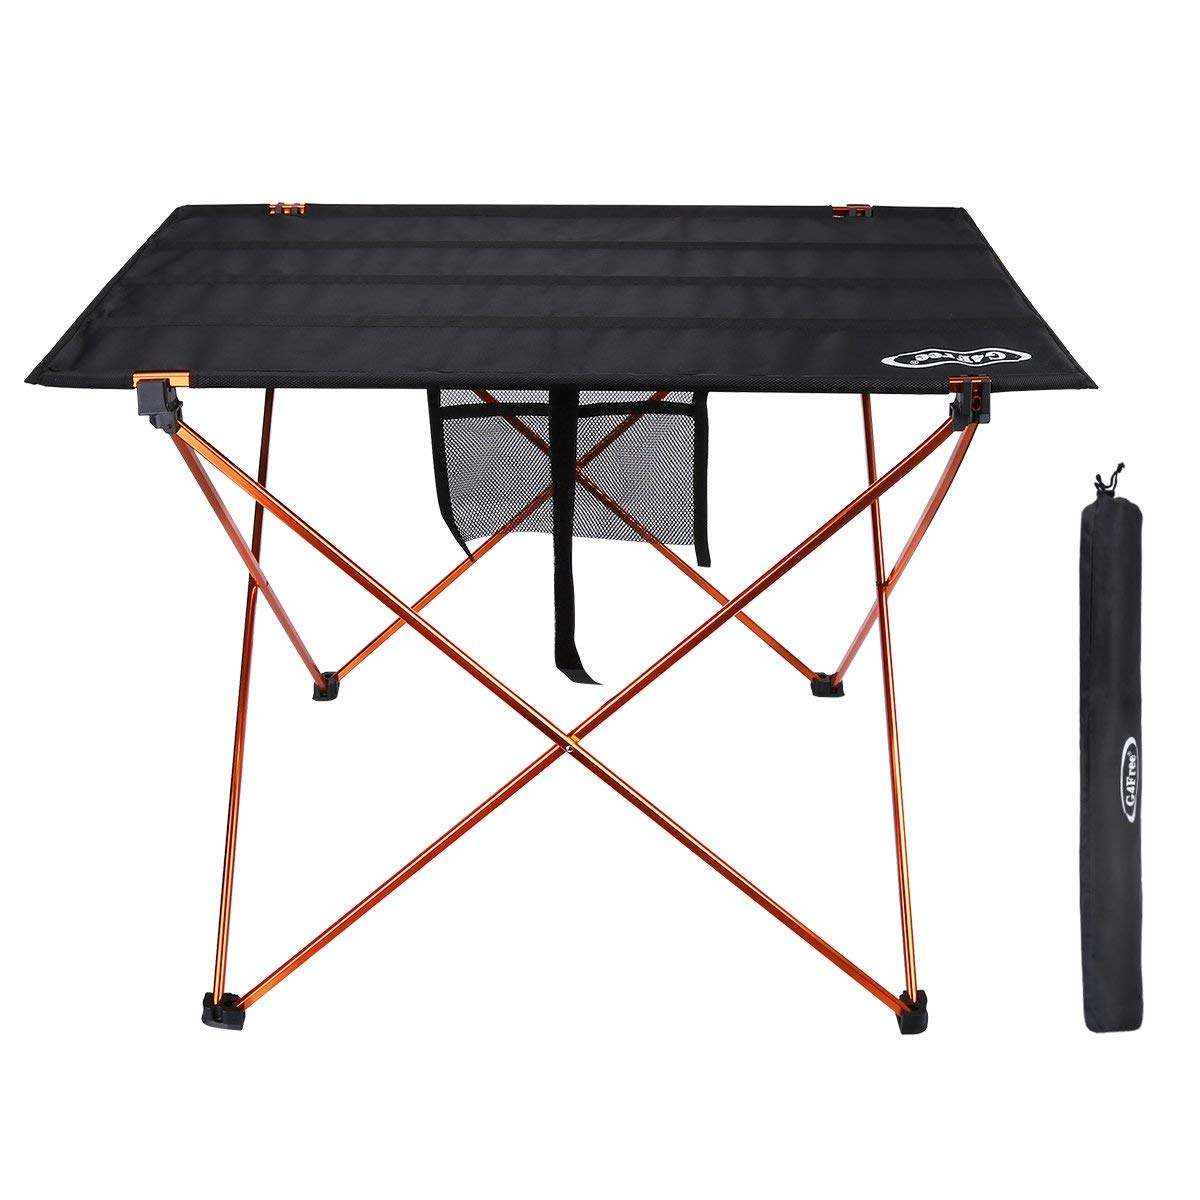 Ultra Portable Folding Table for Camping